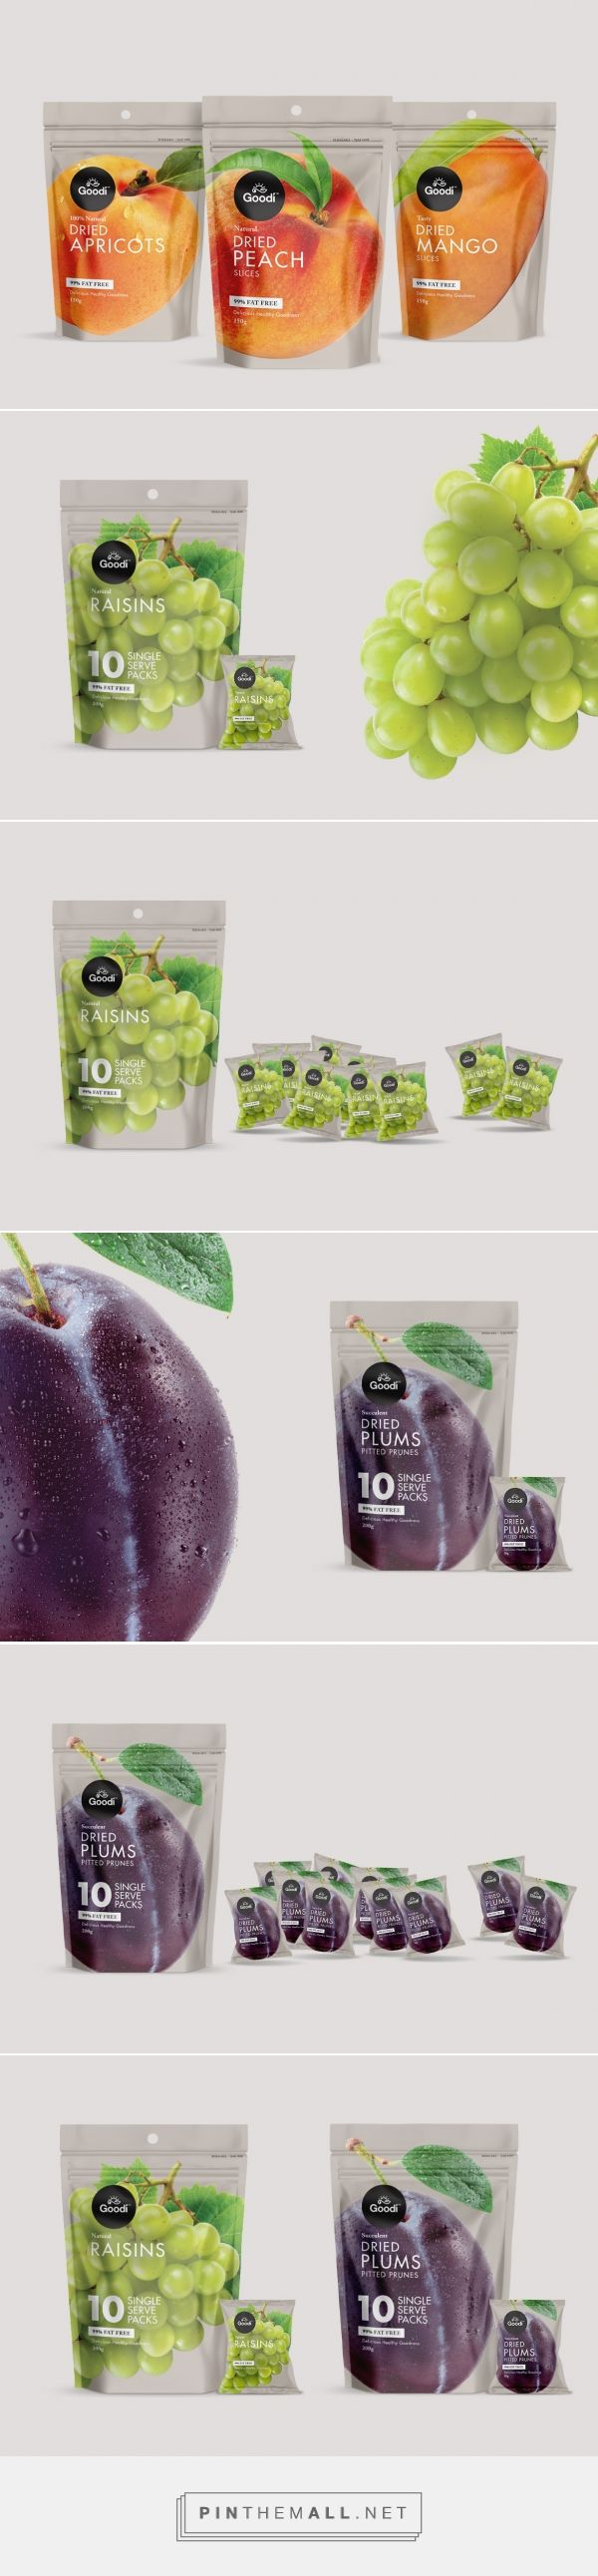 Goodi Dried Fruit packaging design by Redfire - http://www.packagingoftheworld.com/2017/08/goodi-dried-fruit-pouches.html